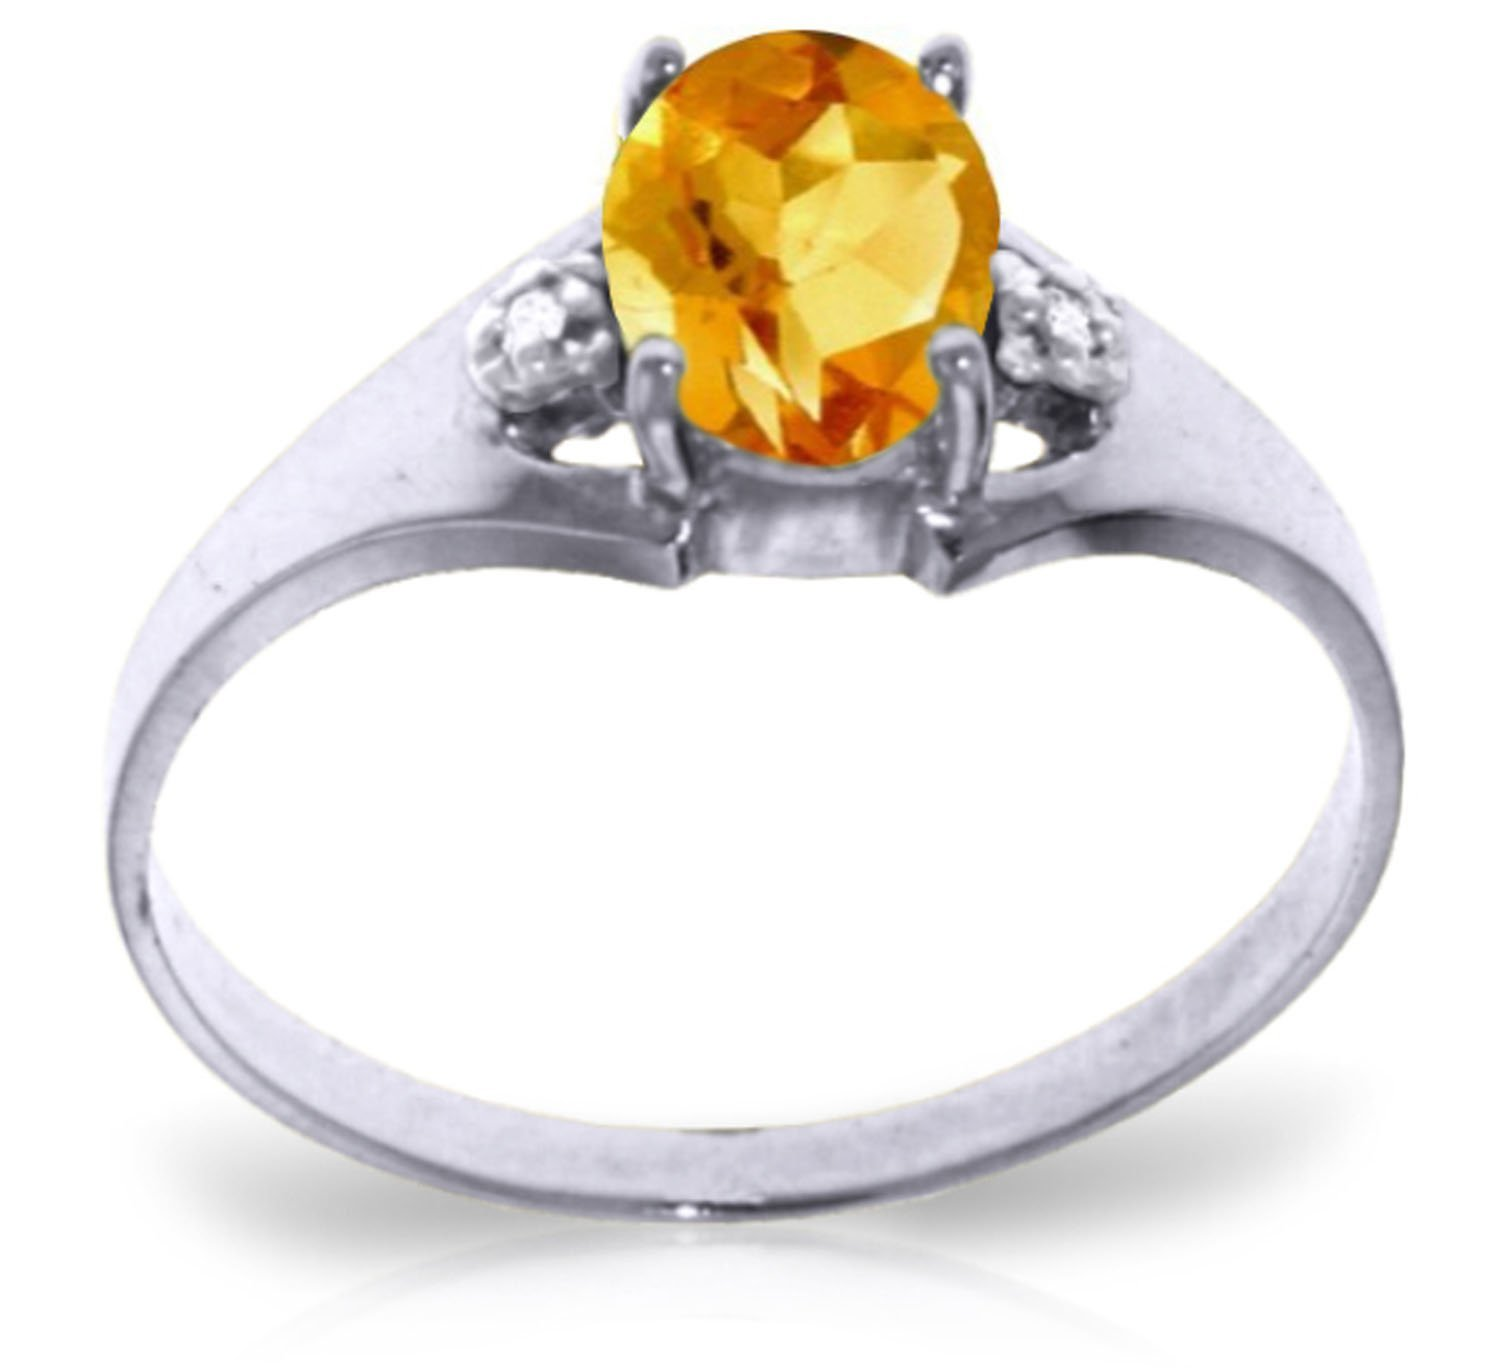 0.76 Carat 14k Solid White Gold Ring with Genuine Diamonds and Natural Oval-shaped Citrine - Size 11